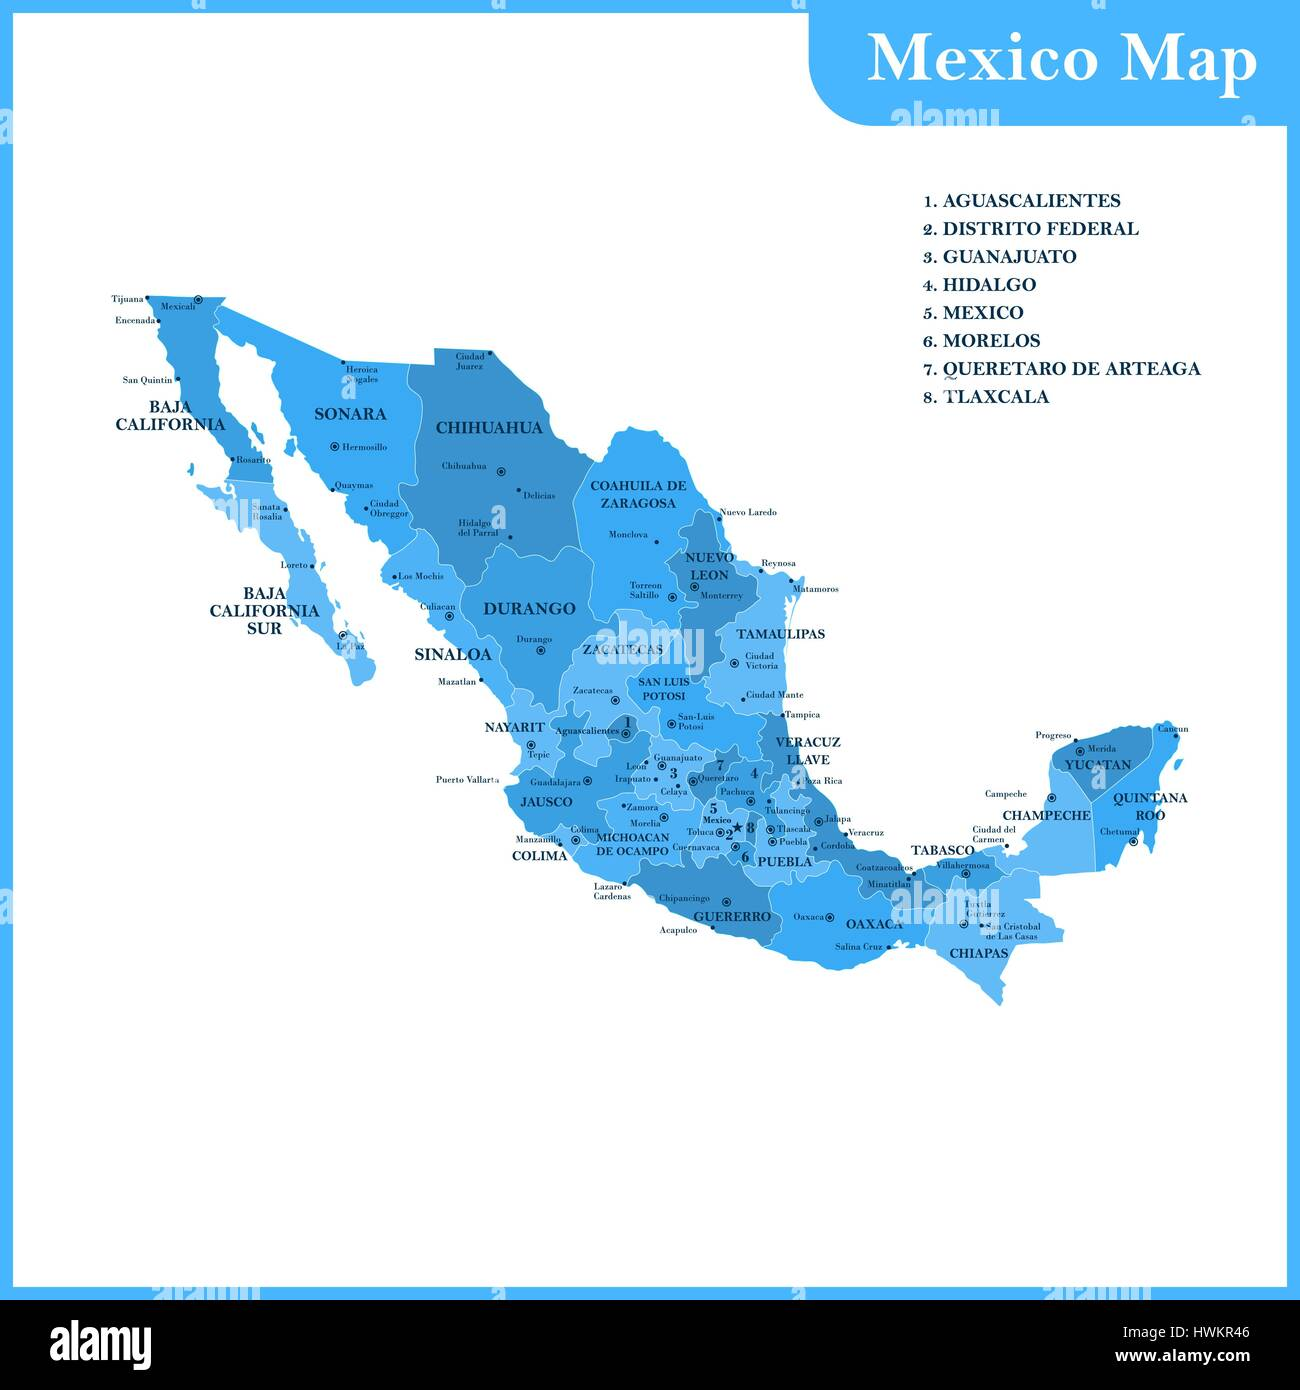 The Detailed Map Of The Mexico With Regions Or States And Cities